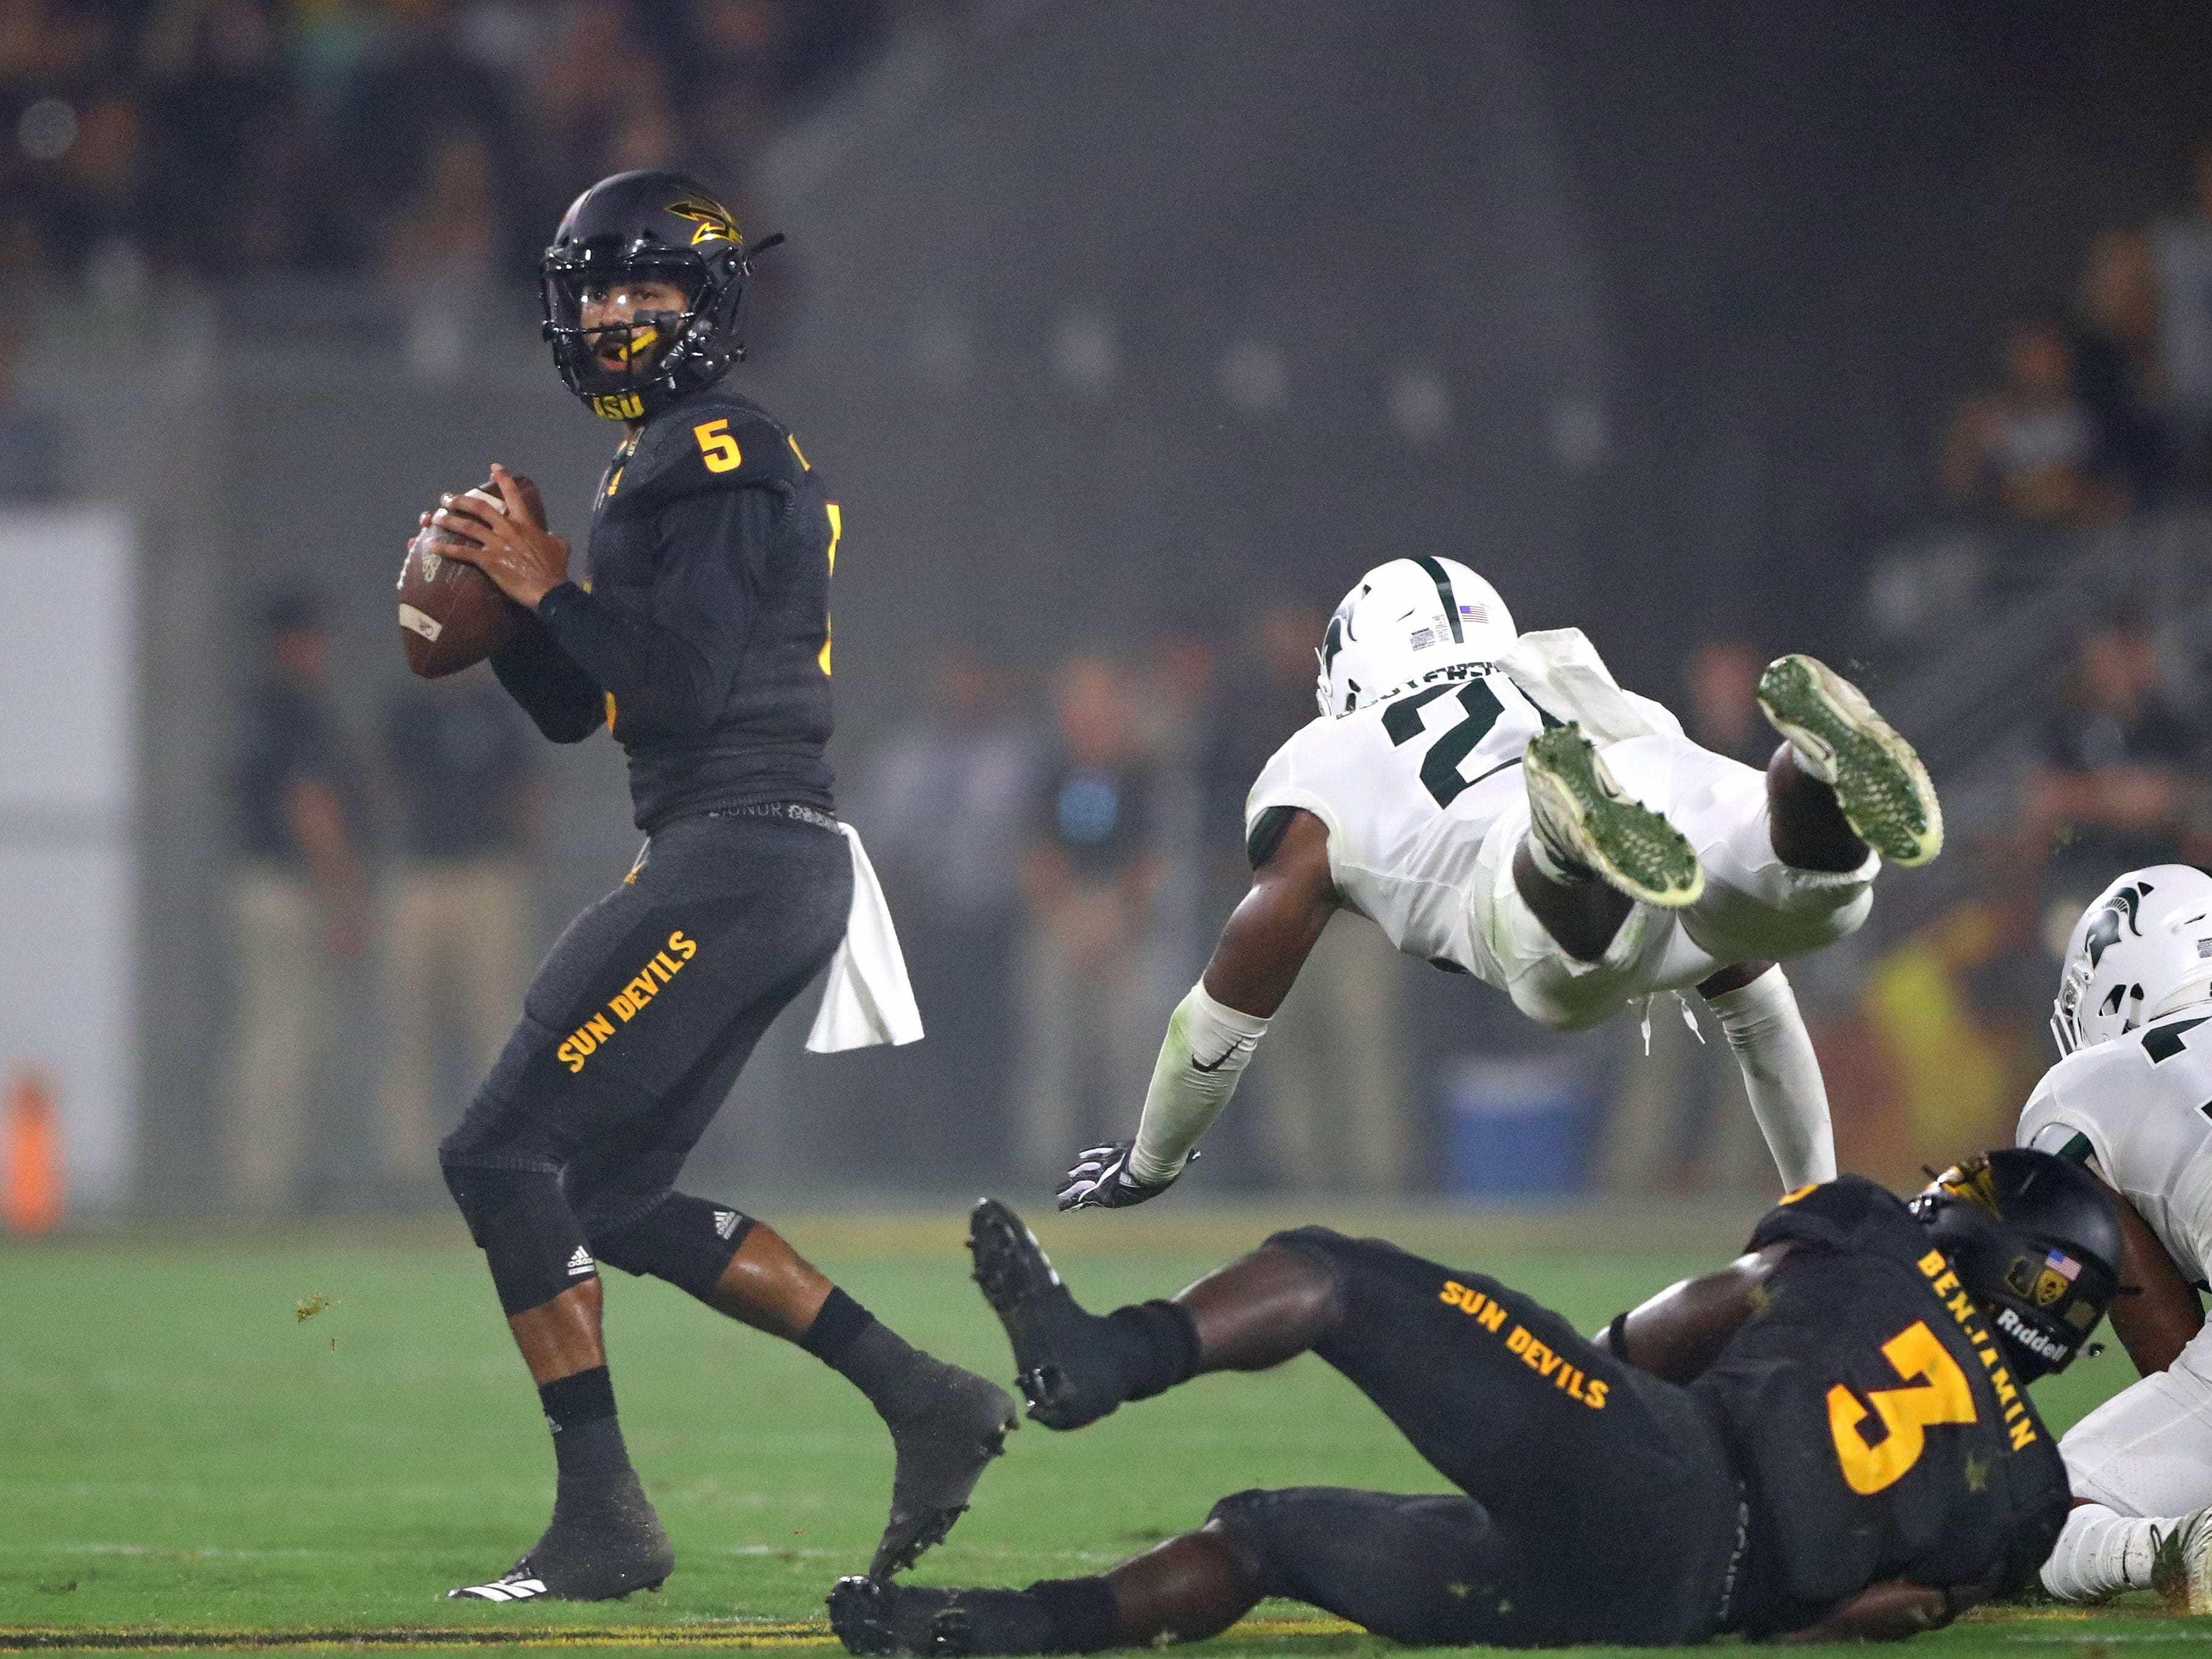 Arizona State Sun Devils quarterback Manny Wilkins (5) drops back to pass as Michigan State Spartans linebacker Brandon Bouyer-Randle (26) is upended as he attempts to tackle in the first half at Sun Devil Stadium.